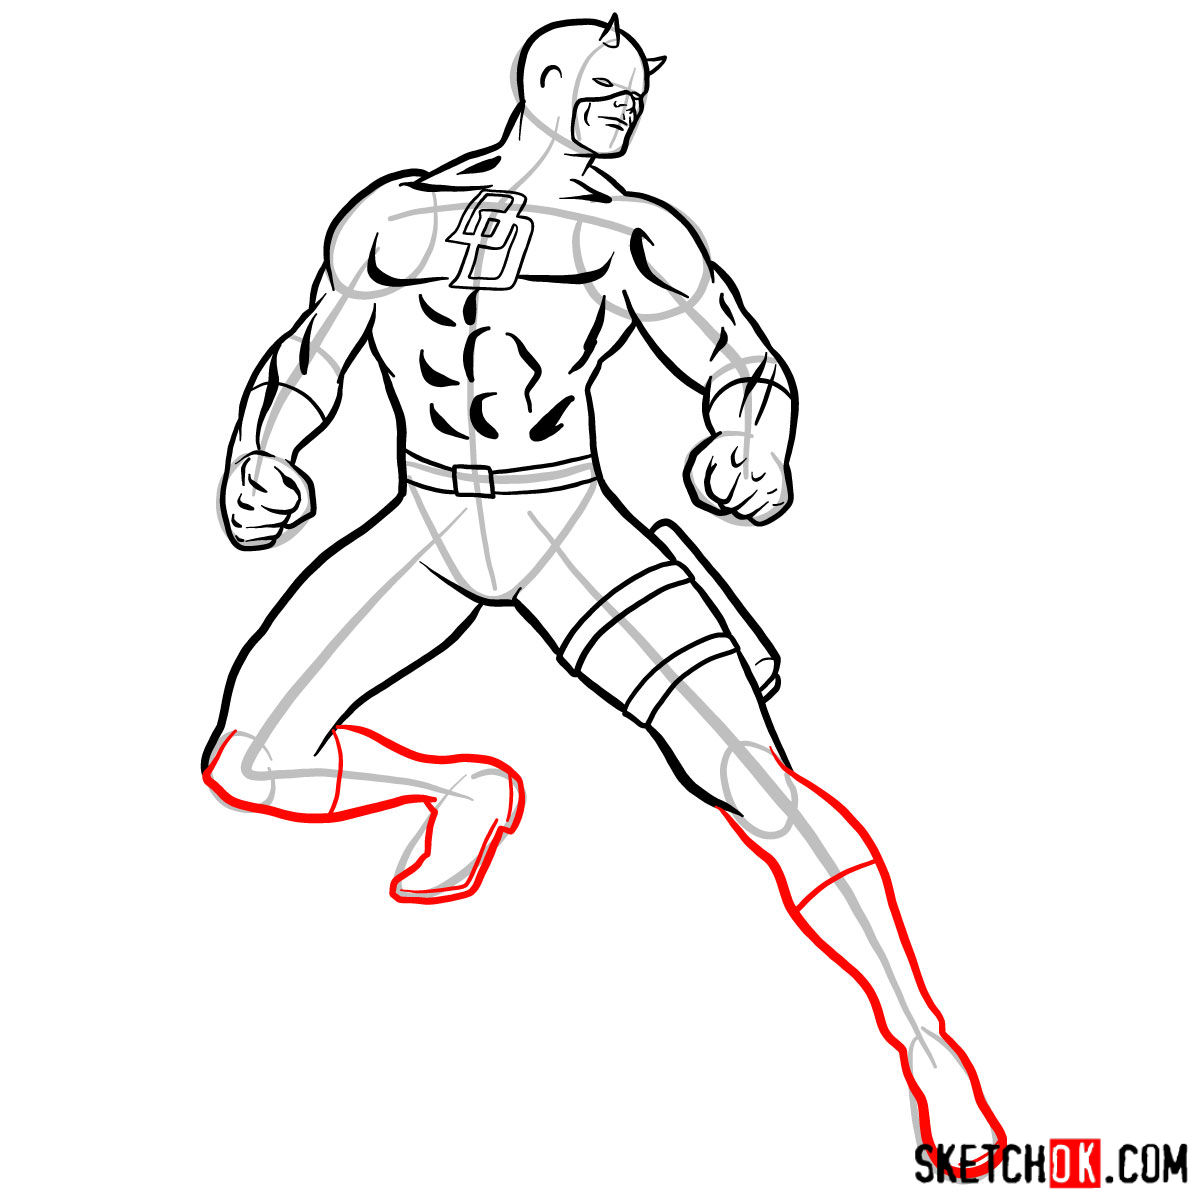 How to draw Daredevil from Marvel - step 11